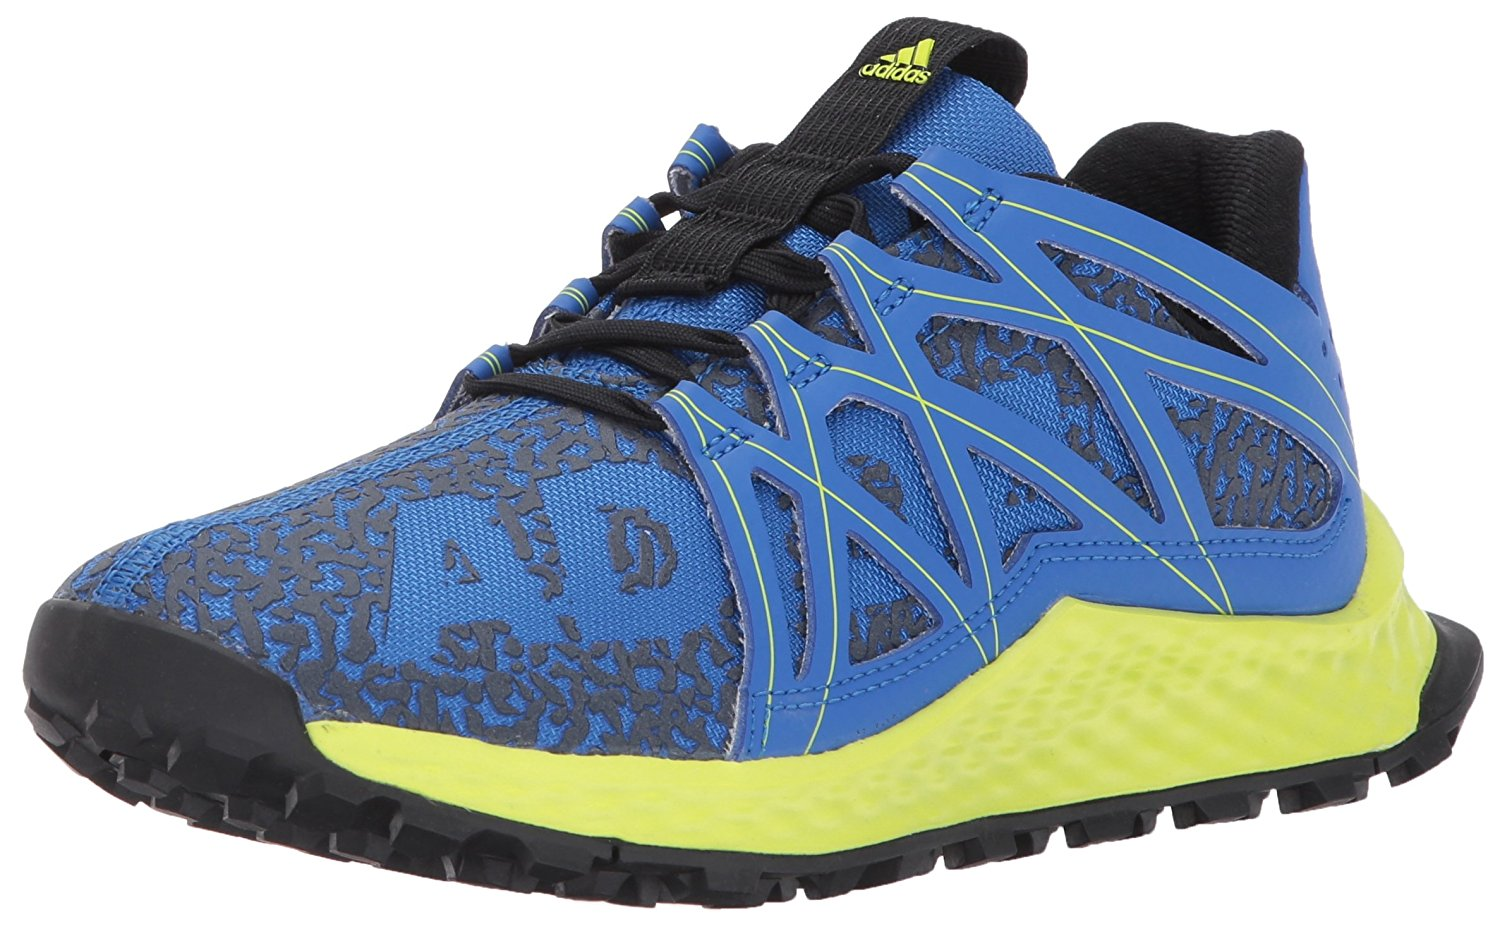 6450127ad68e7 adidas Big Kids Vigor Bounce Trail Runner Shoe Blue Grey Solar ...